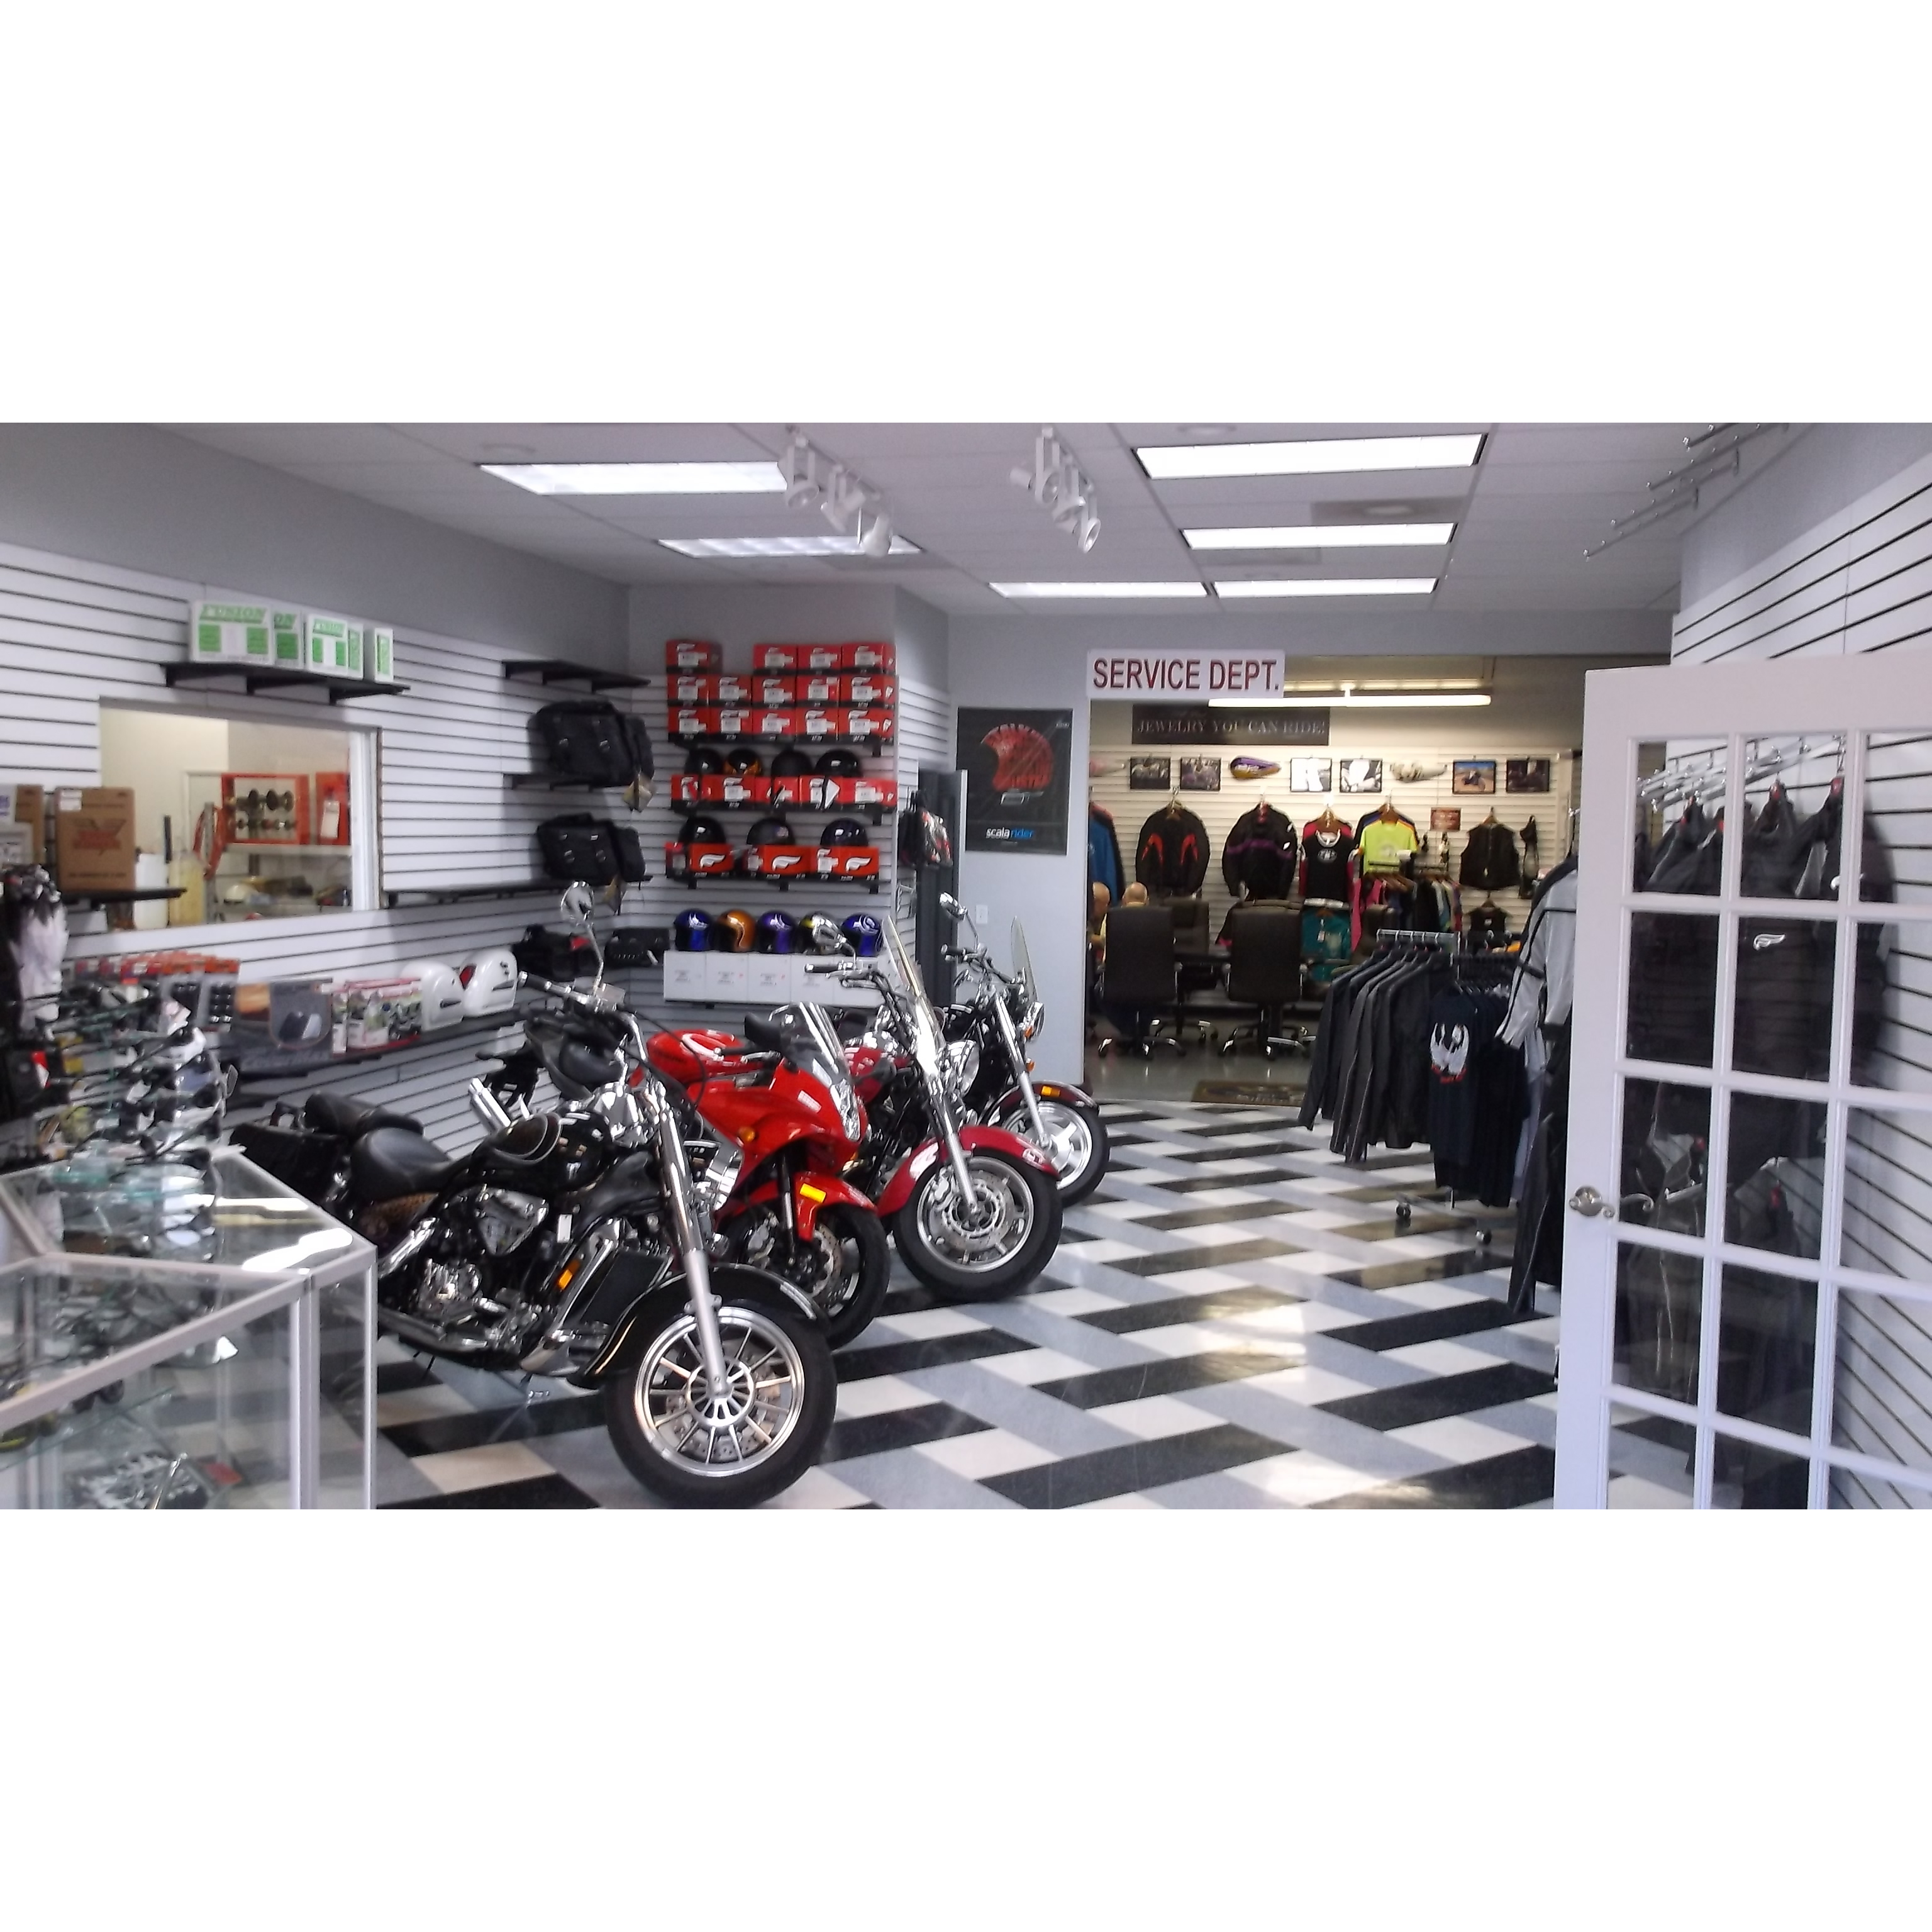 Volusia county cycles in deland fl 32724 for Volusia county motor vehicle